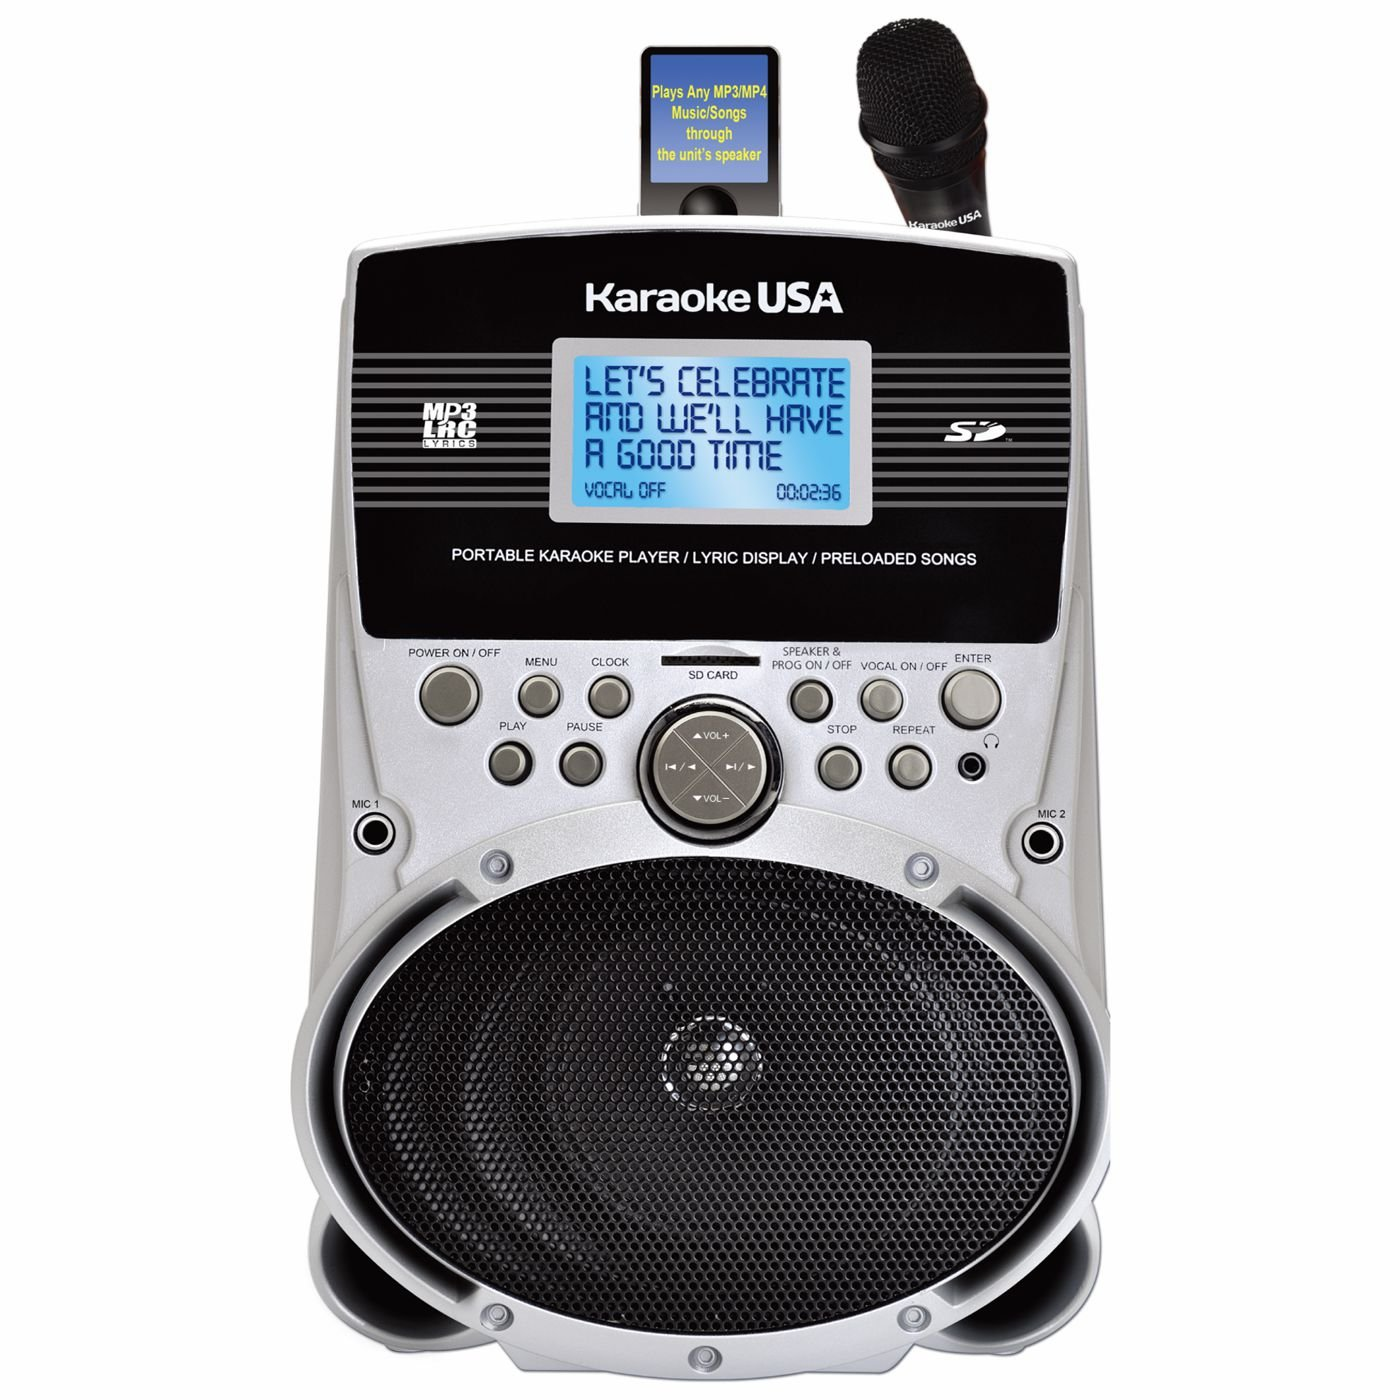 Karaoke USA SD516 Portable MP3 Lyric Player with 3.2 Screen, SD Slot & 100 Songs